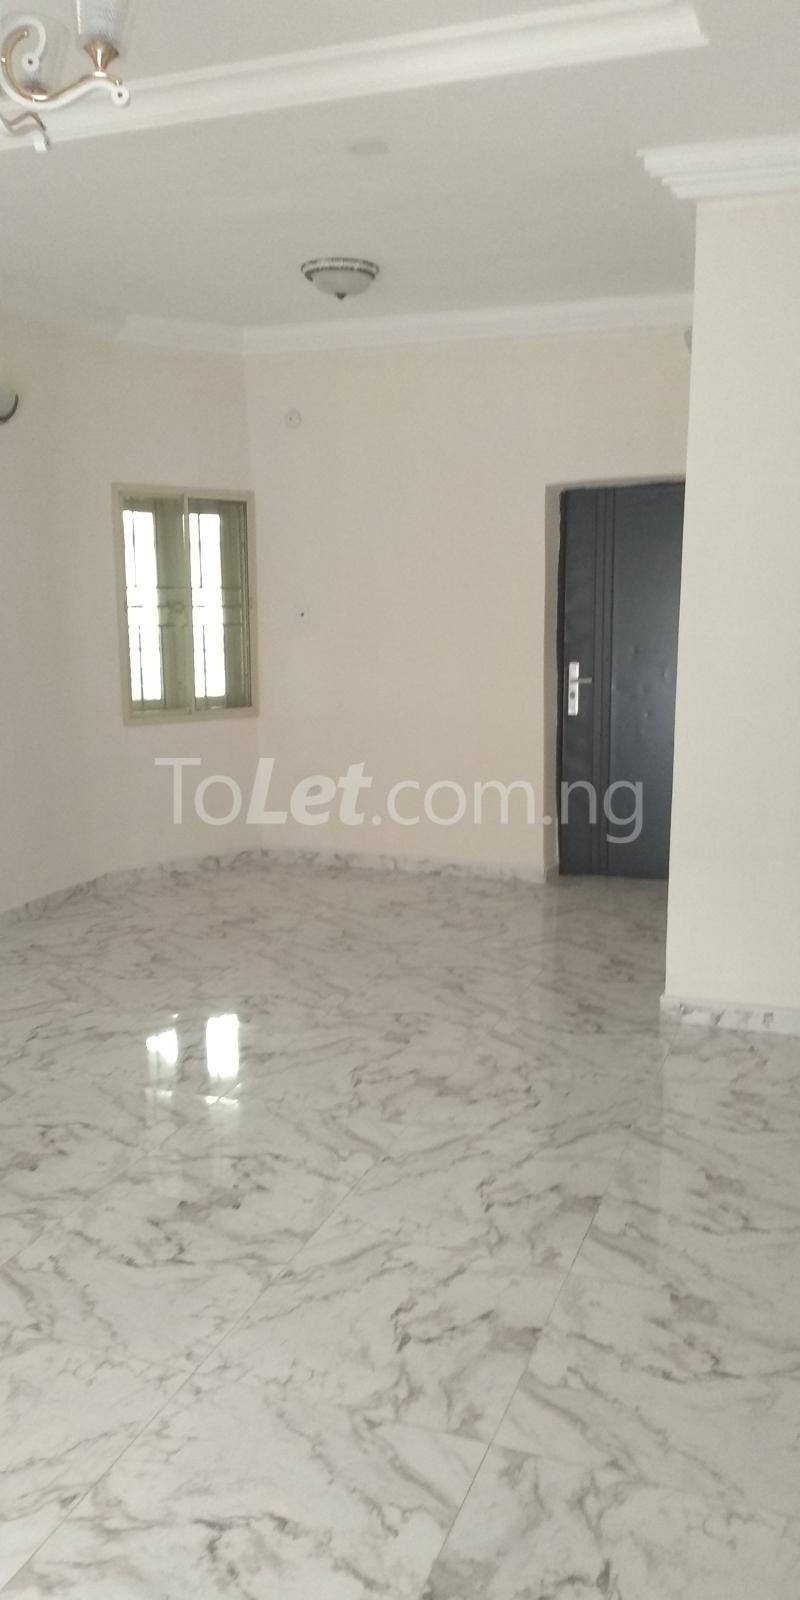 3 bedroom Flat / Apartment for rent - Mende Maryland Lagos - 7